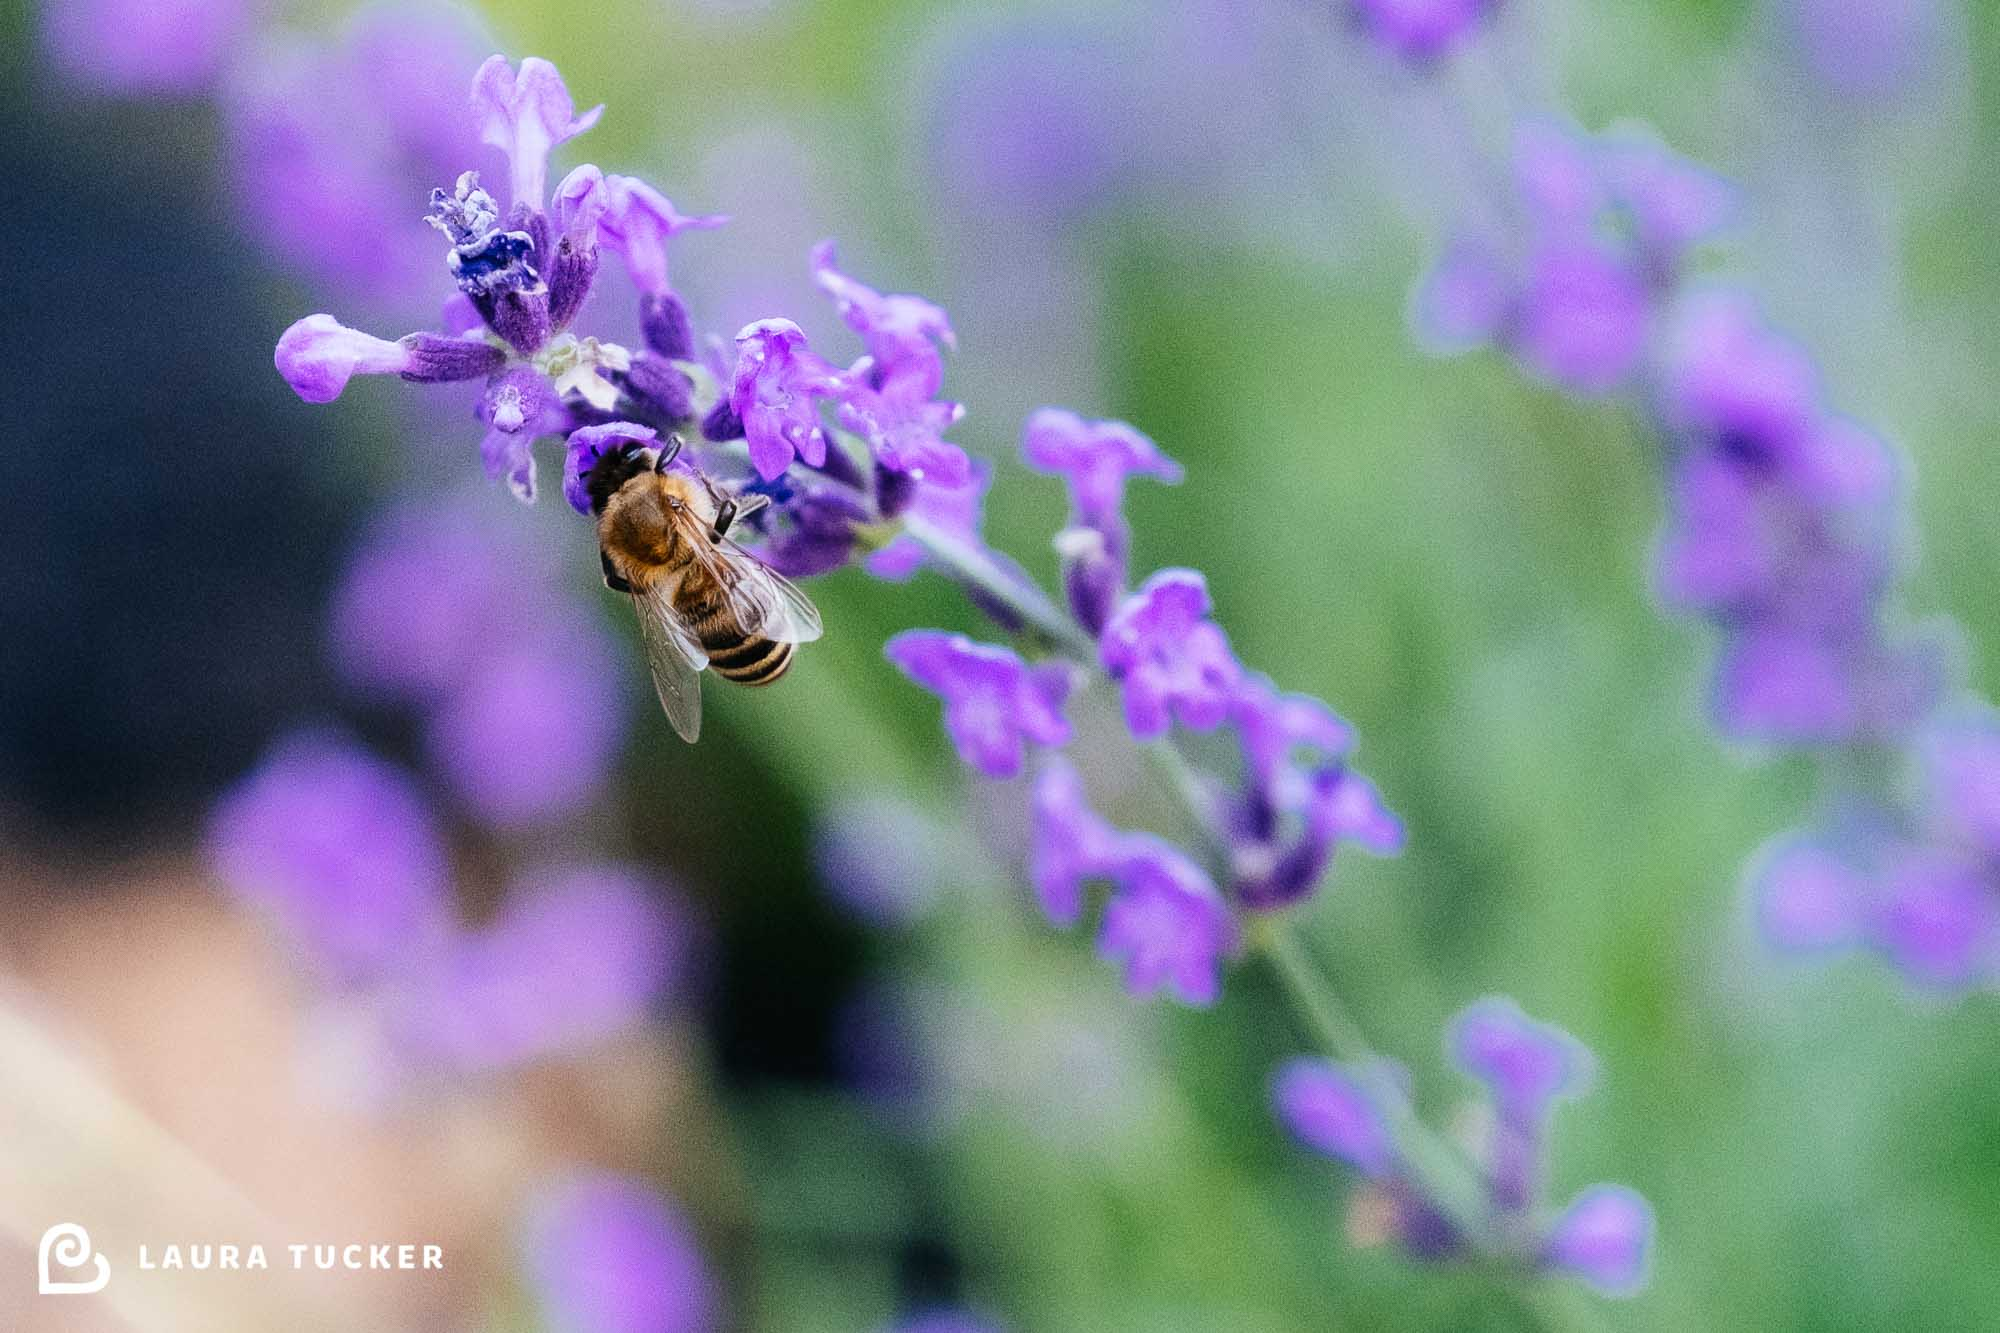 Photo of a honey bee polinating lavender